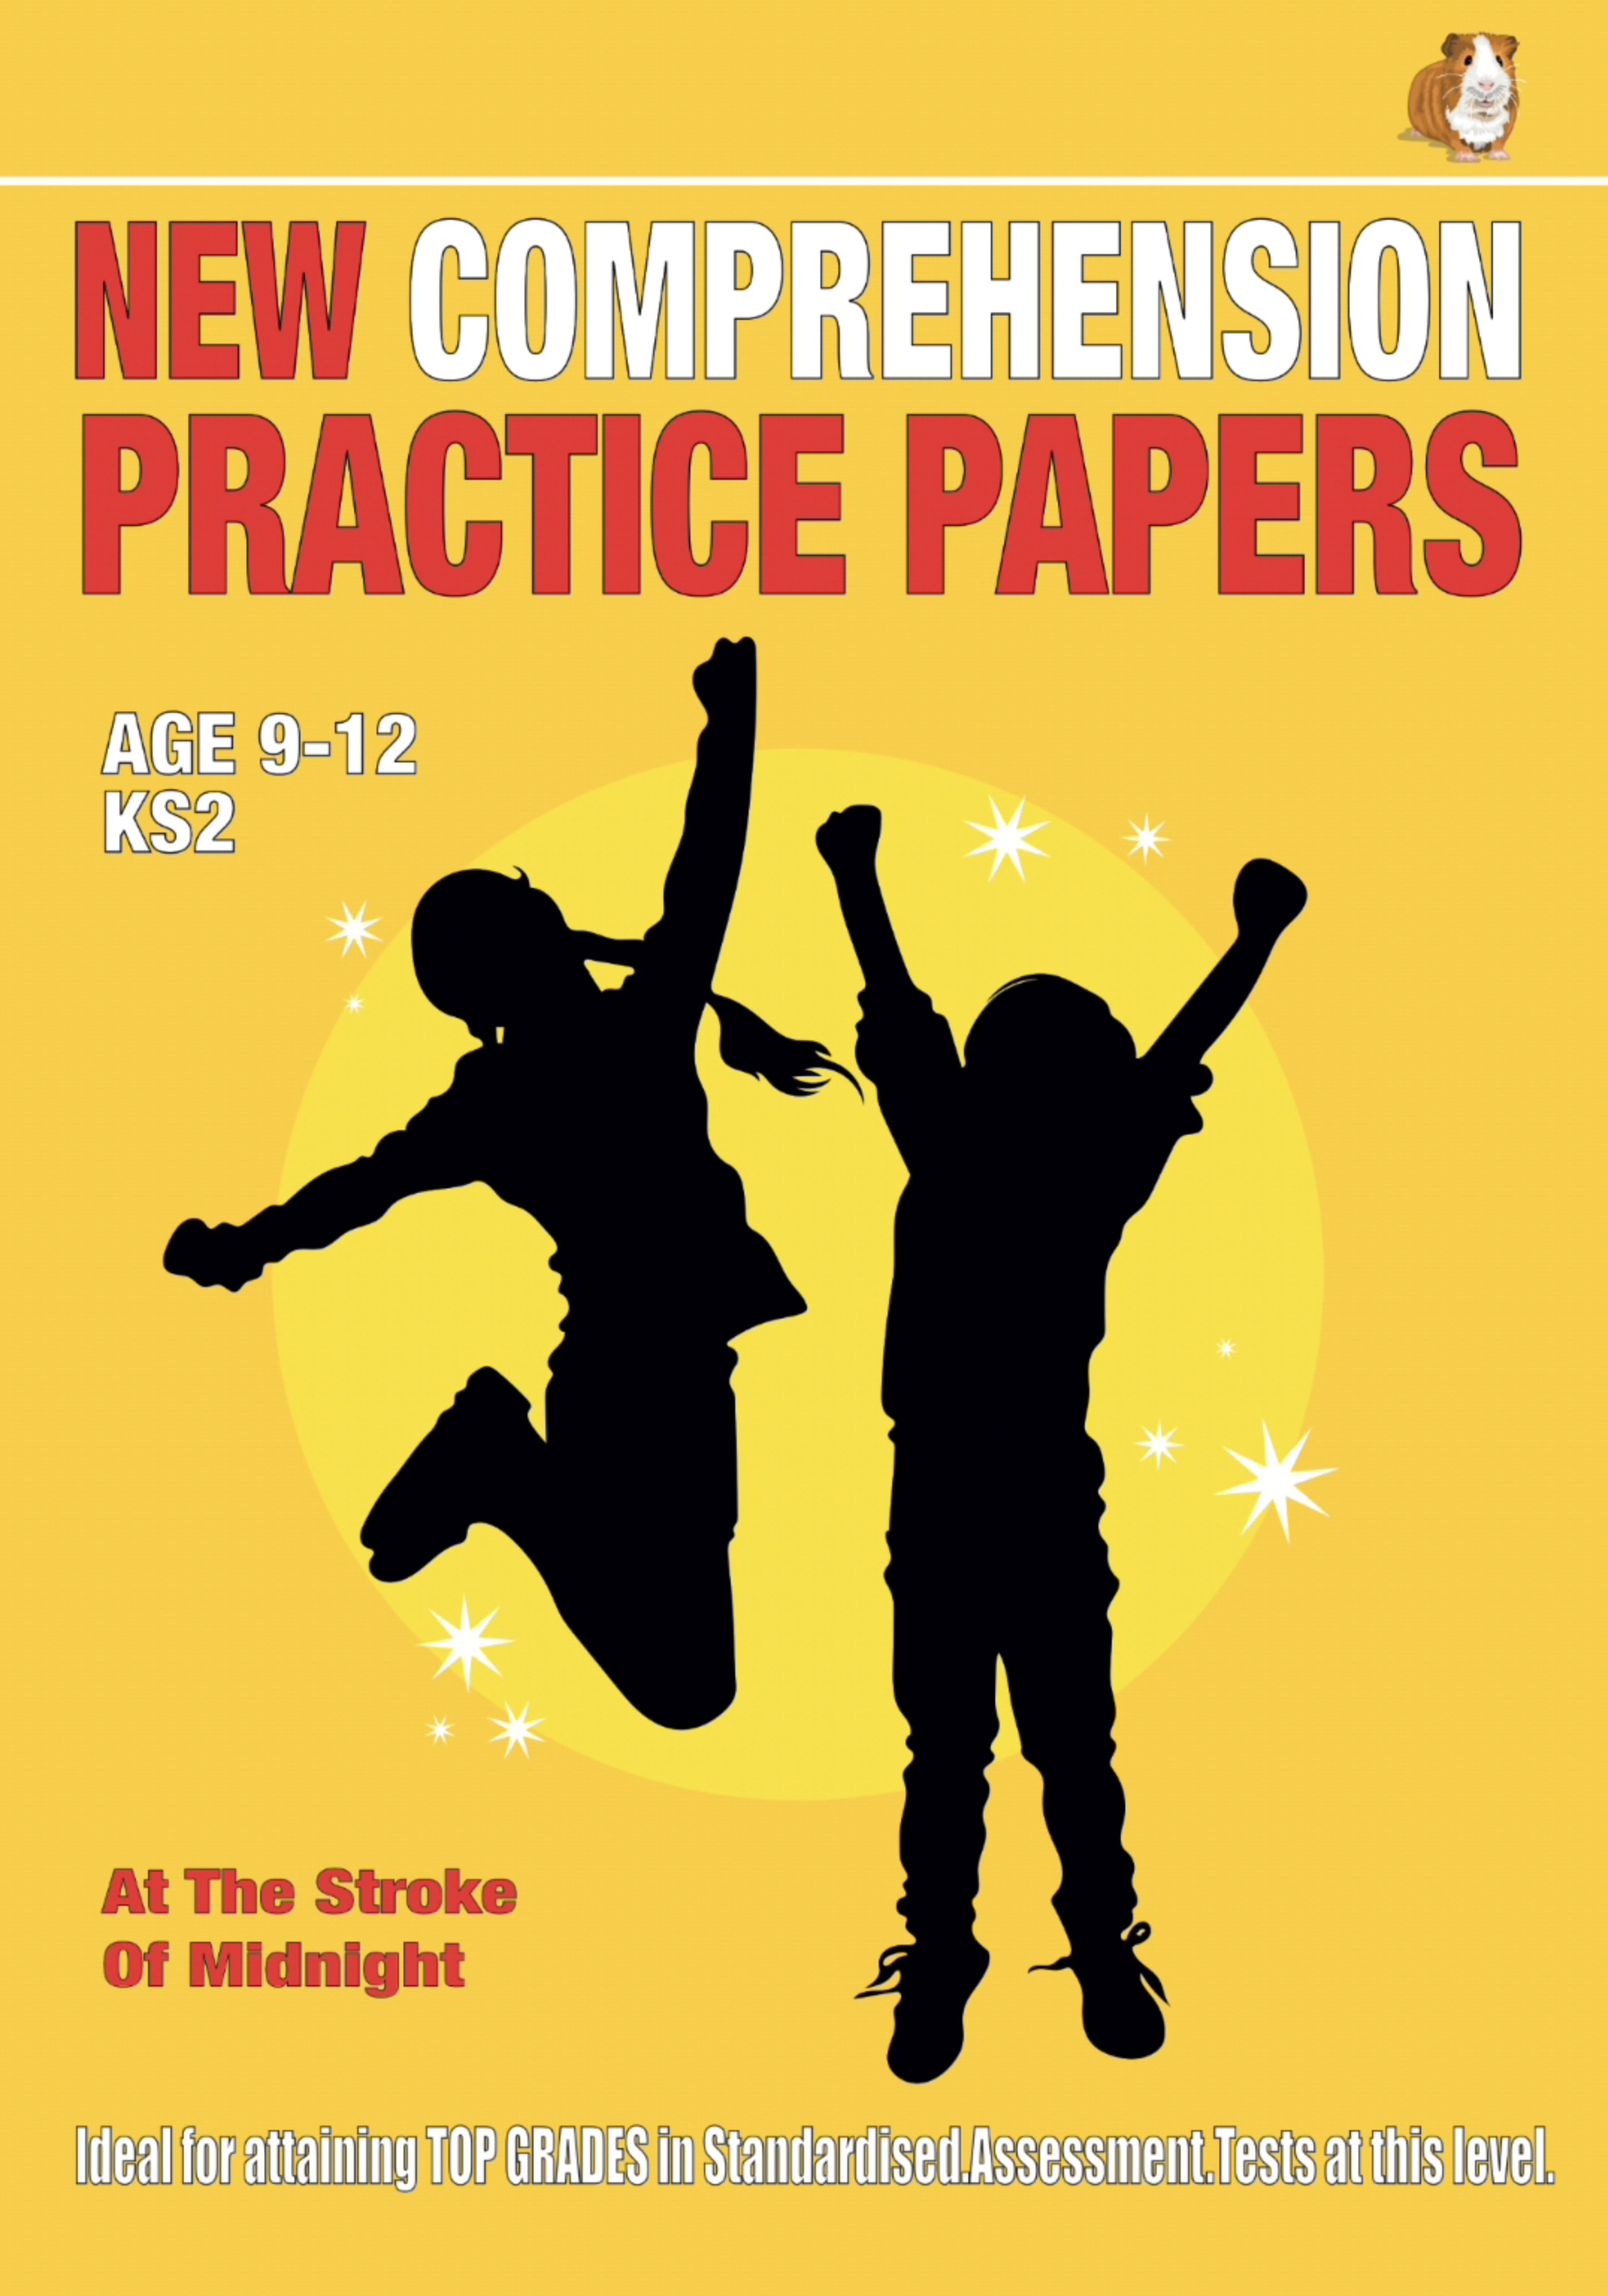 Whole Series: Comprehension Practice Papers 1-10 (9-12 years)